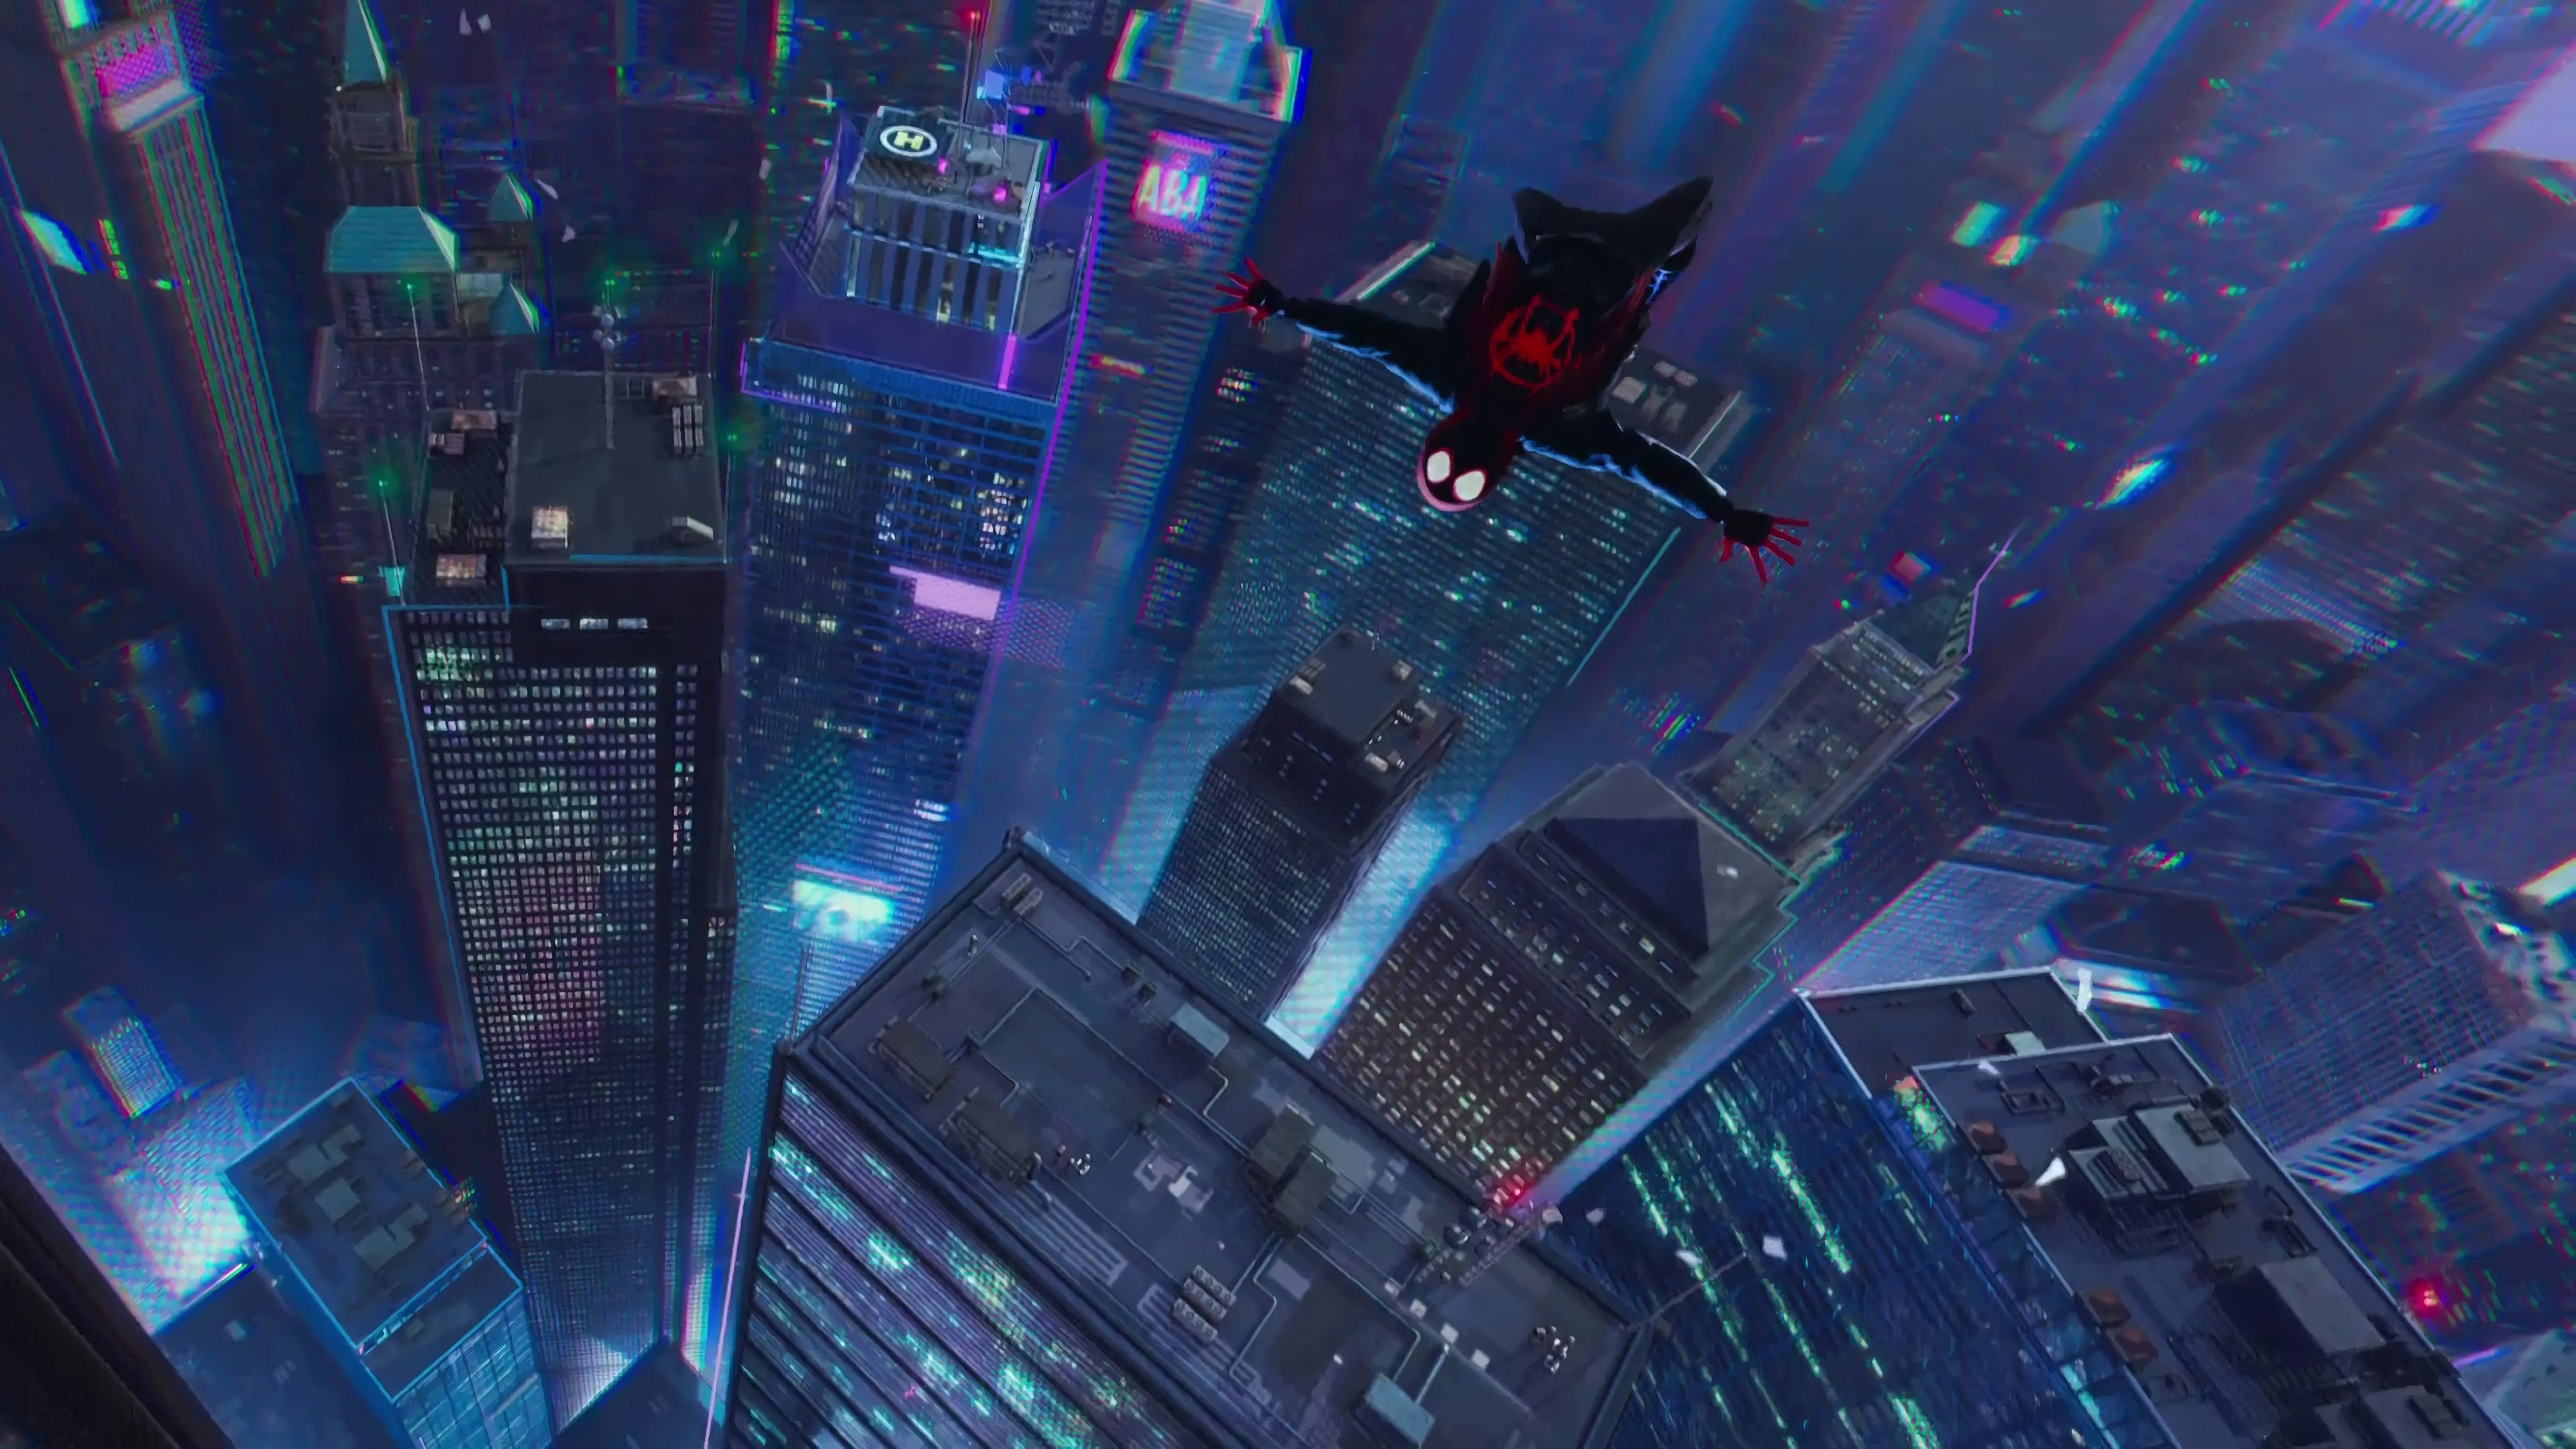 General 3840x2160 Spider Man Into The Spider Verse Miles Morales Spider Man Marvel Comics Movies Animate Marvel Comics Wallpaper Marvel Wallpaper Spider Verse